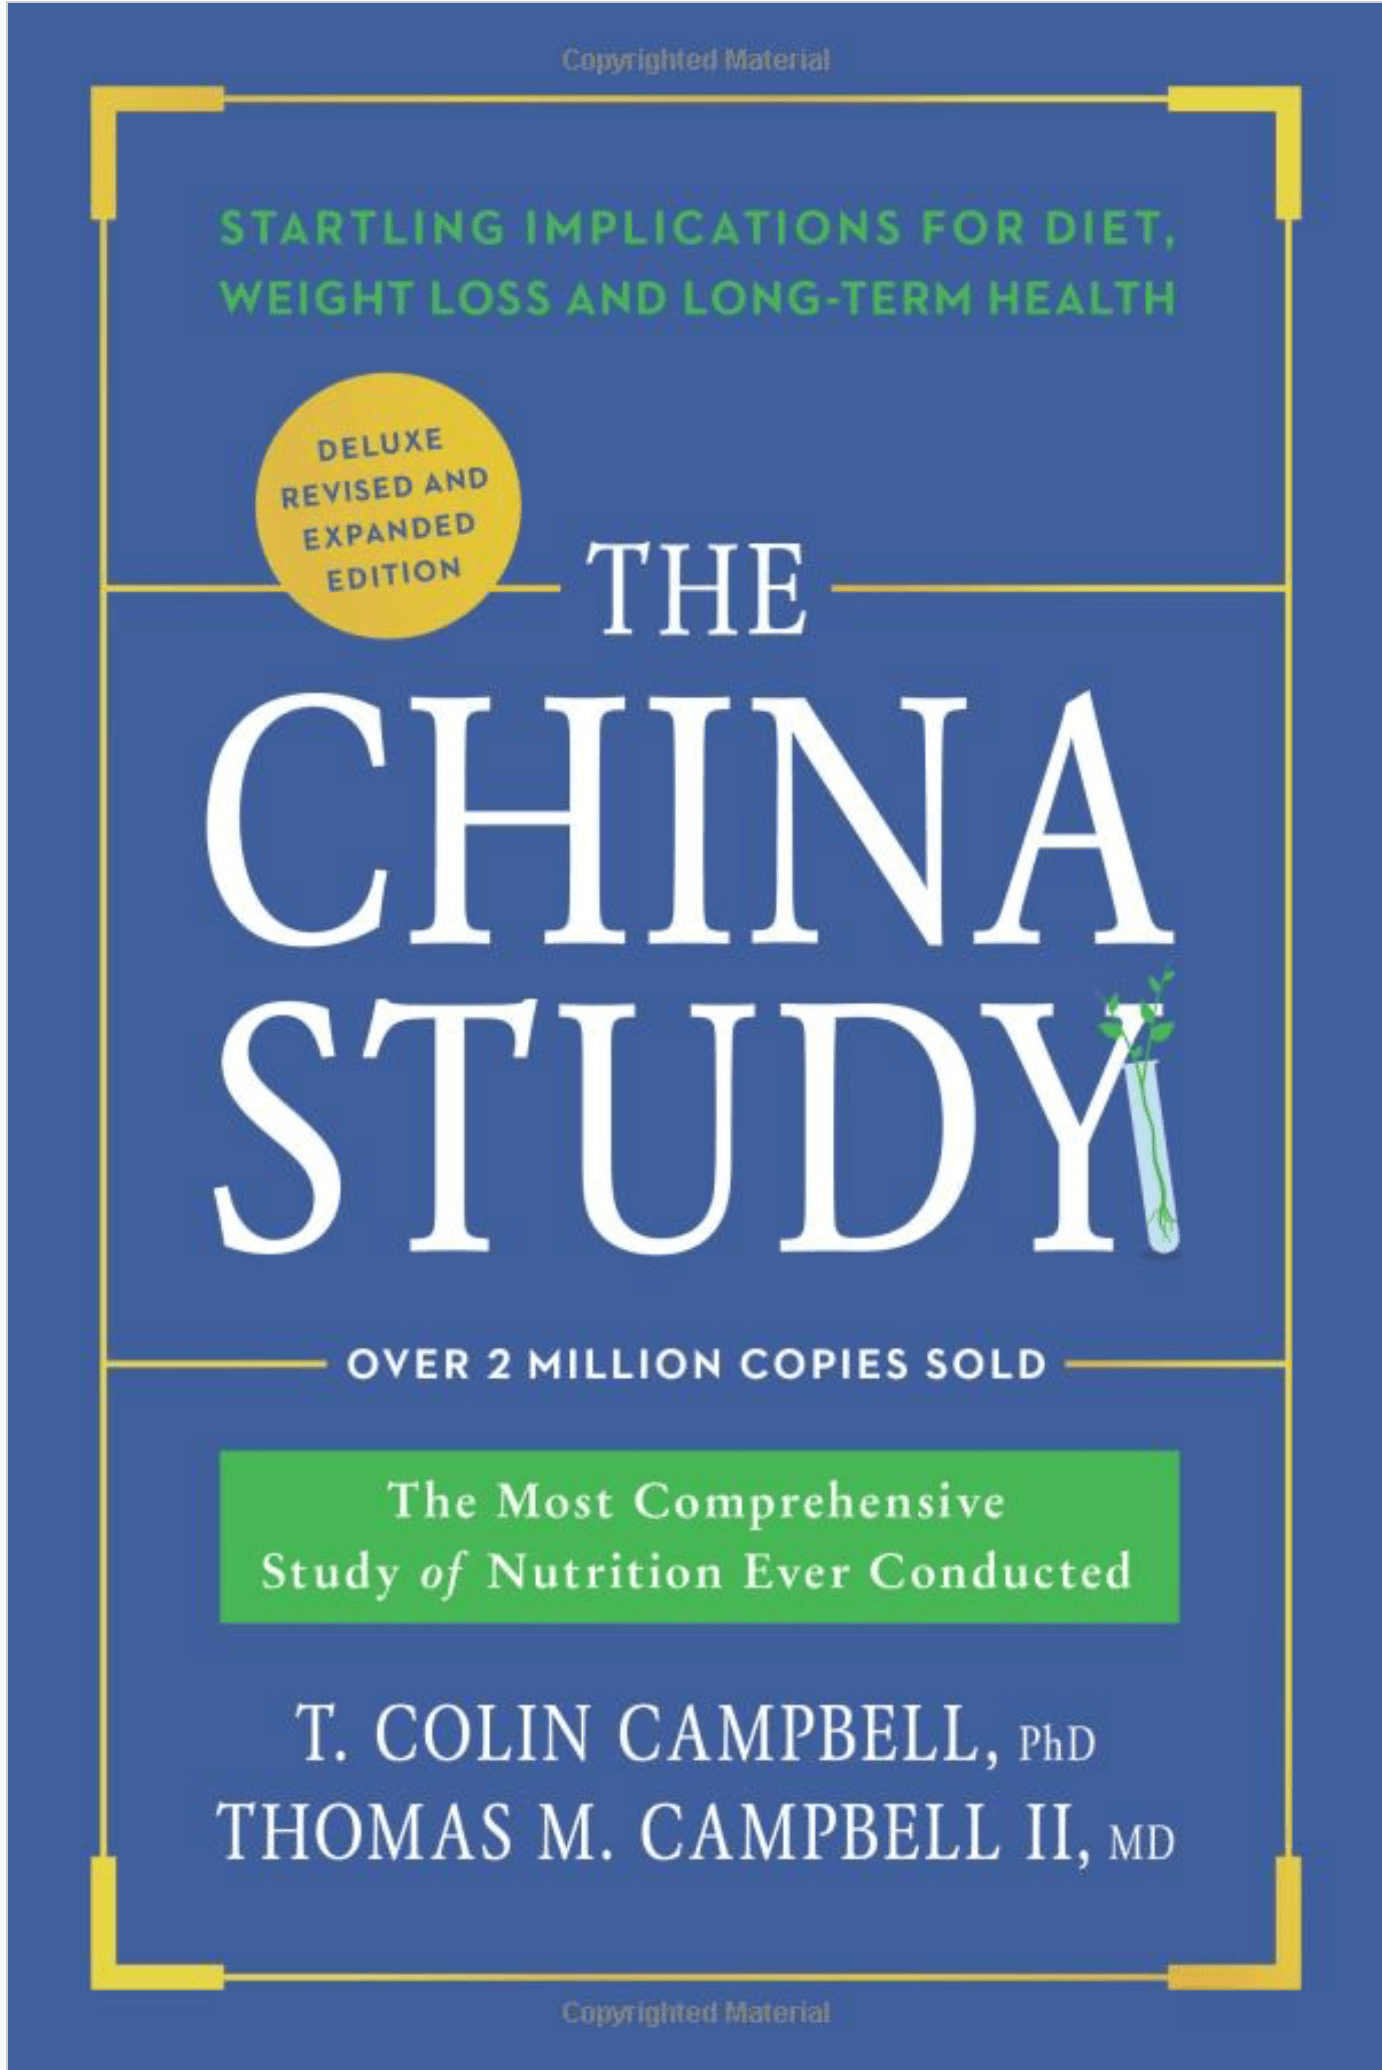 The China Study: Corporate Coverups, 1st Amendment Violations, and Academic Corruption